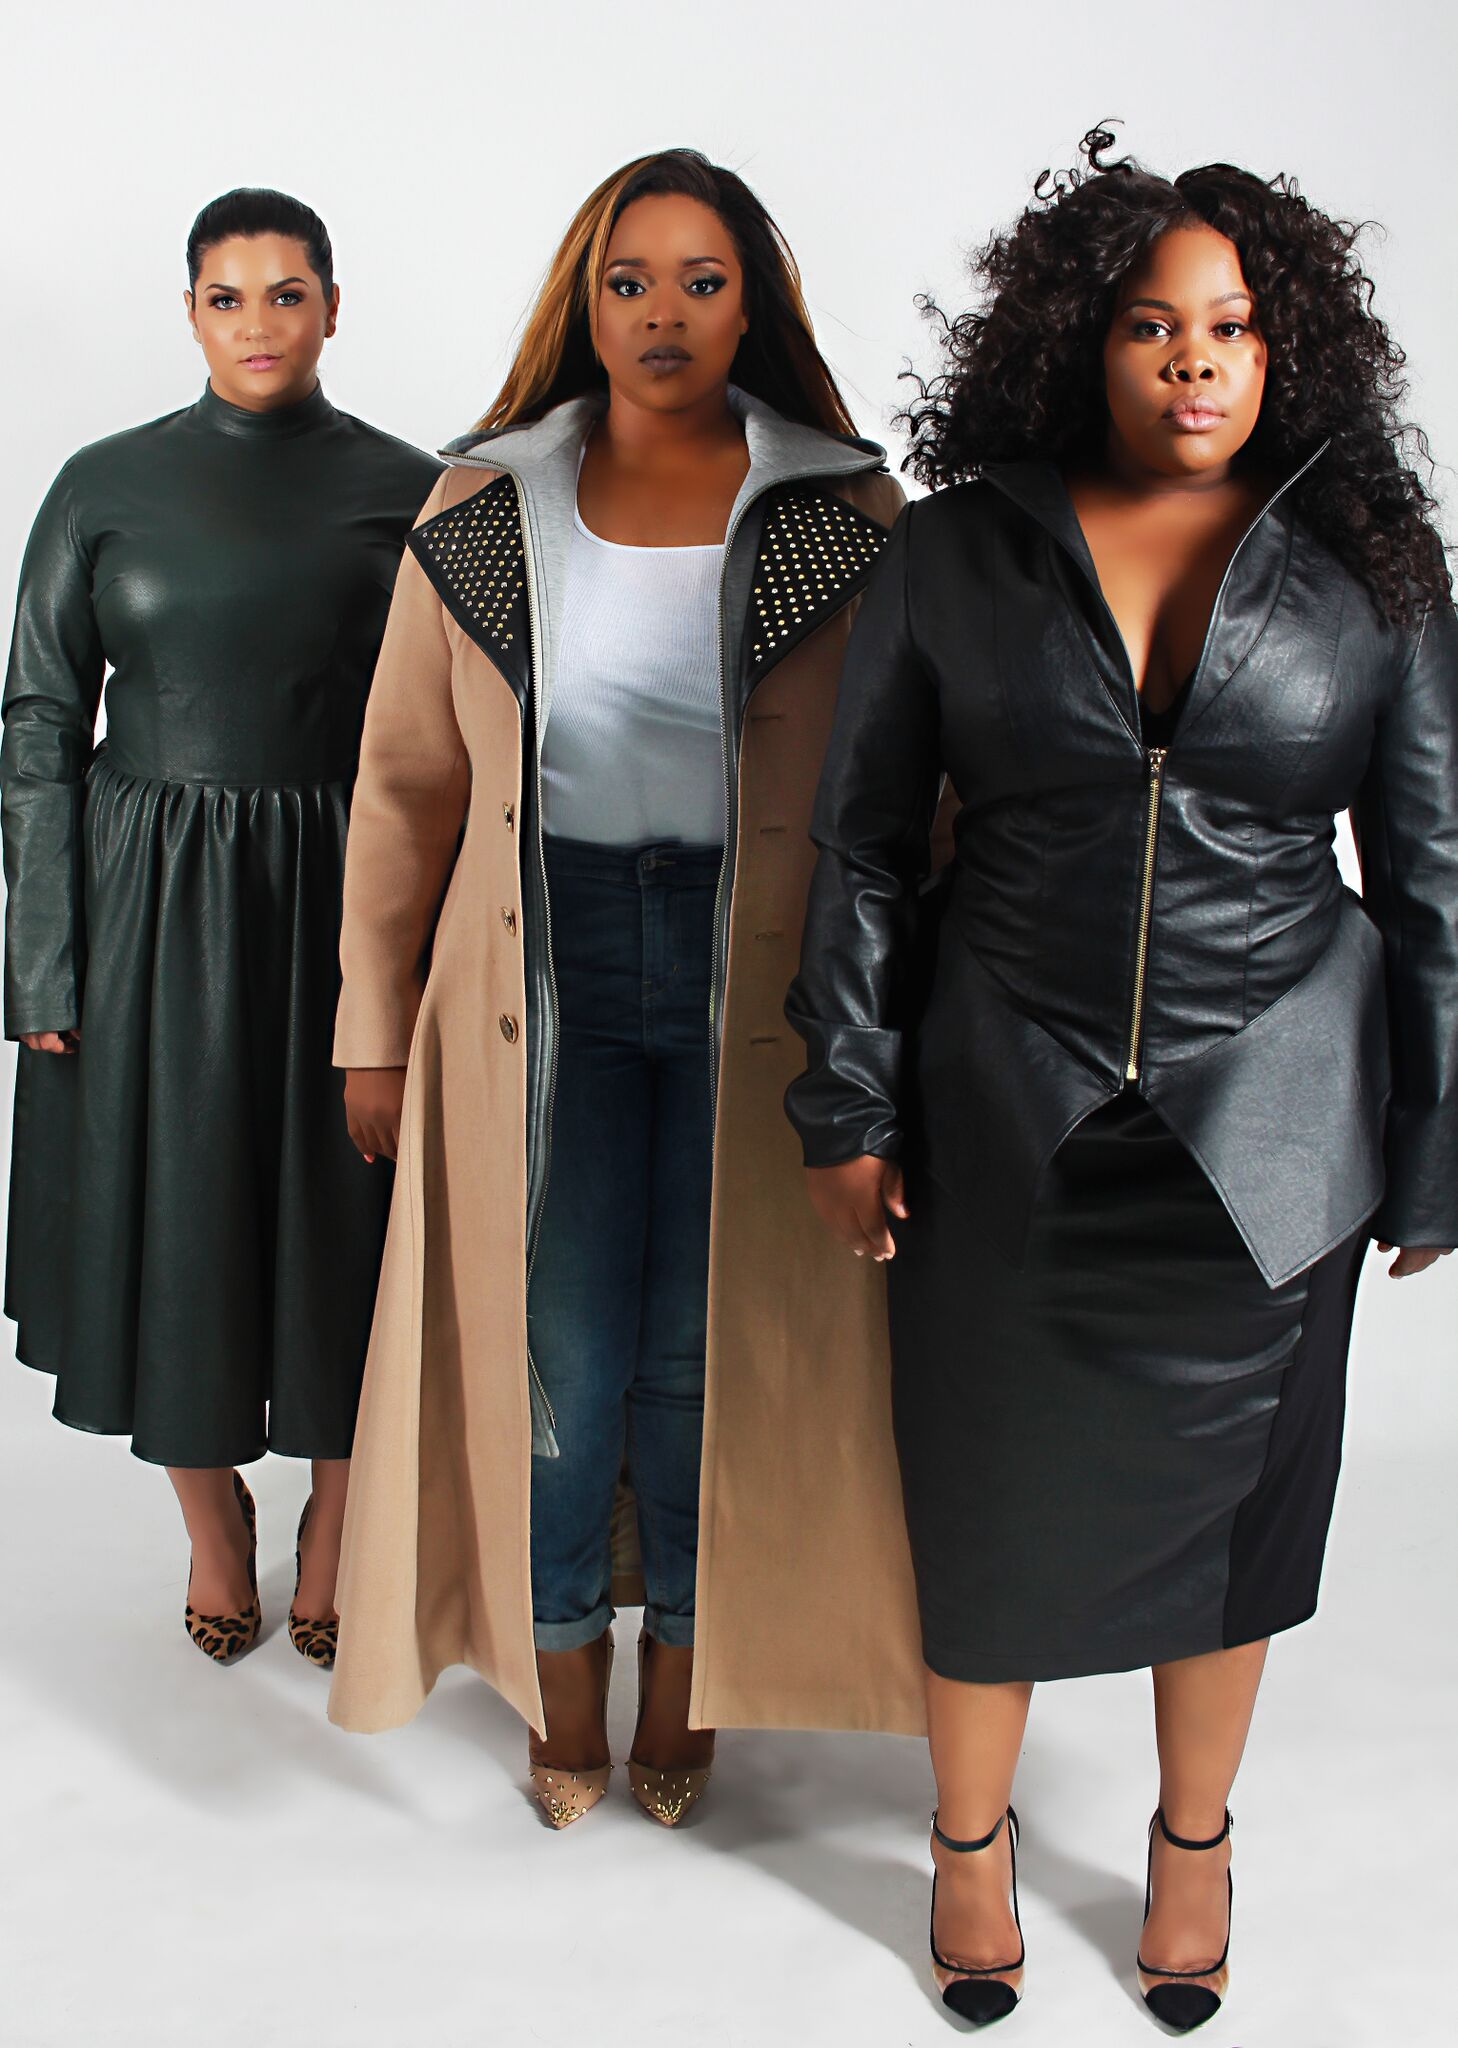 Gospel Singer Kierra Sheard Launches A New Plus Size Clothing Line ...